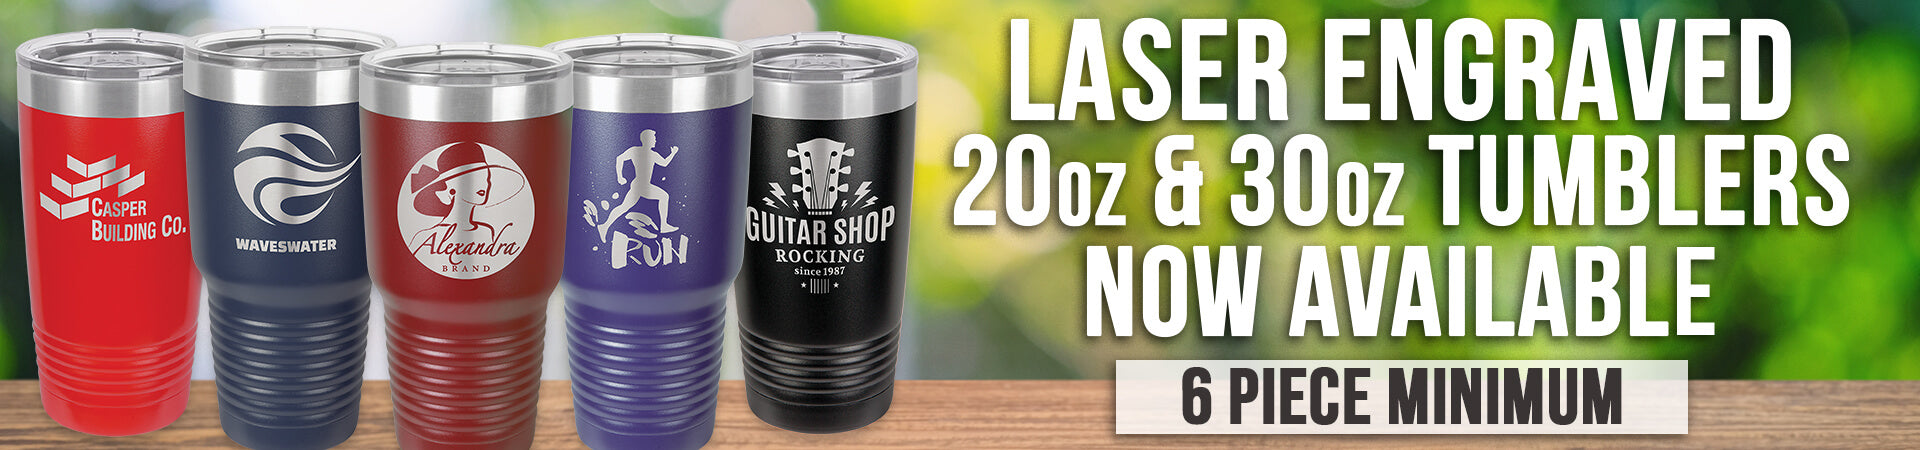 Laser Engraved 20oz & 30oz Tumblers Now Available--6 Piece Minimum